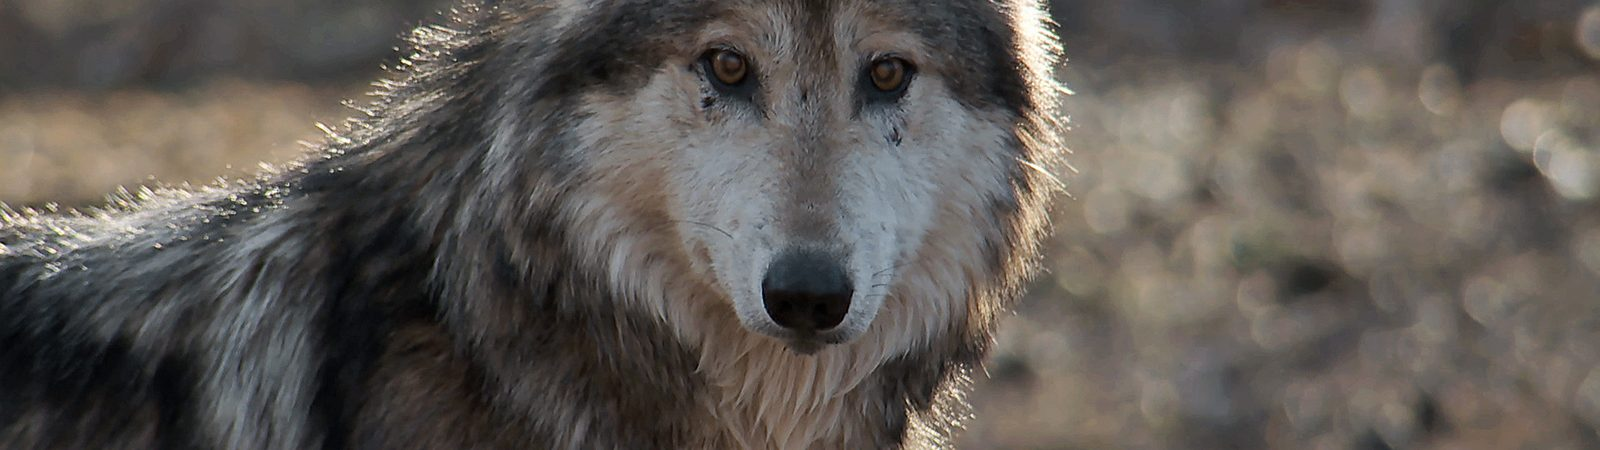 Mexican gray wolf movie still